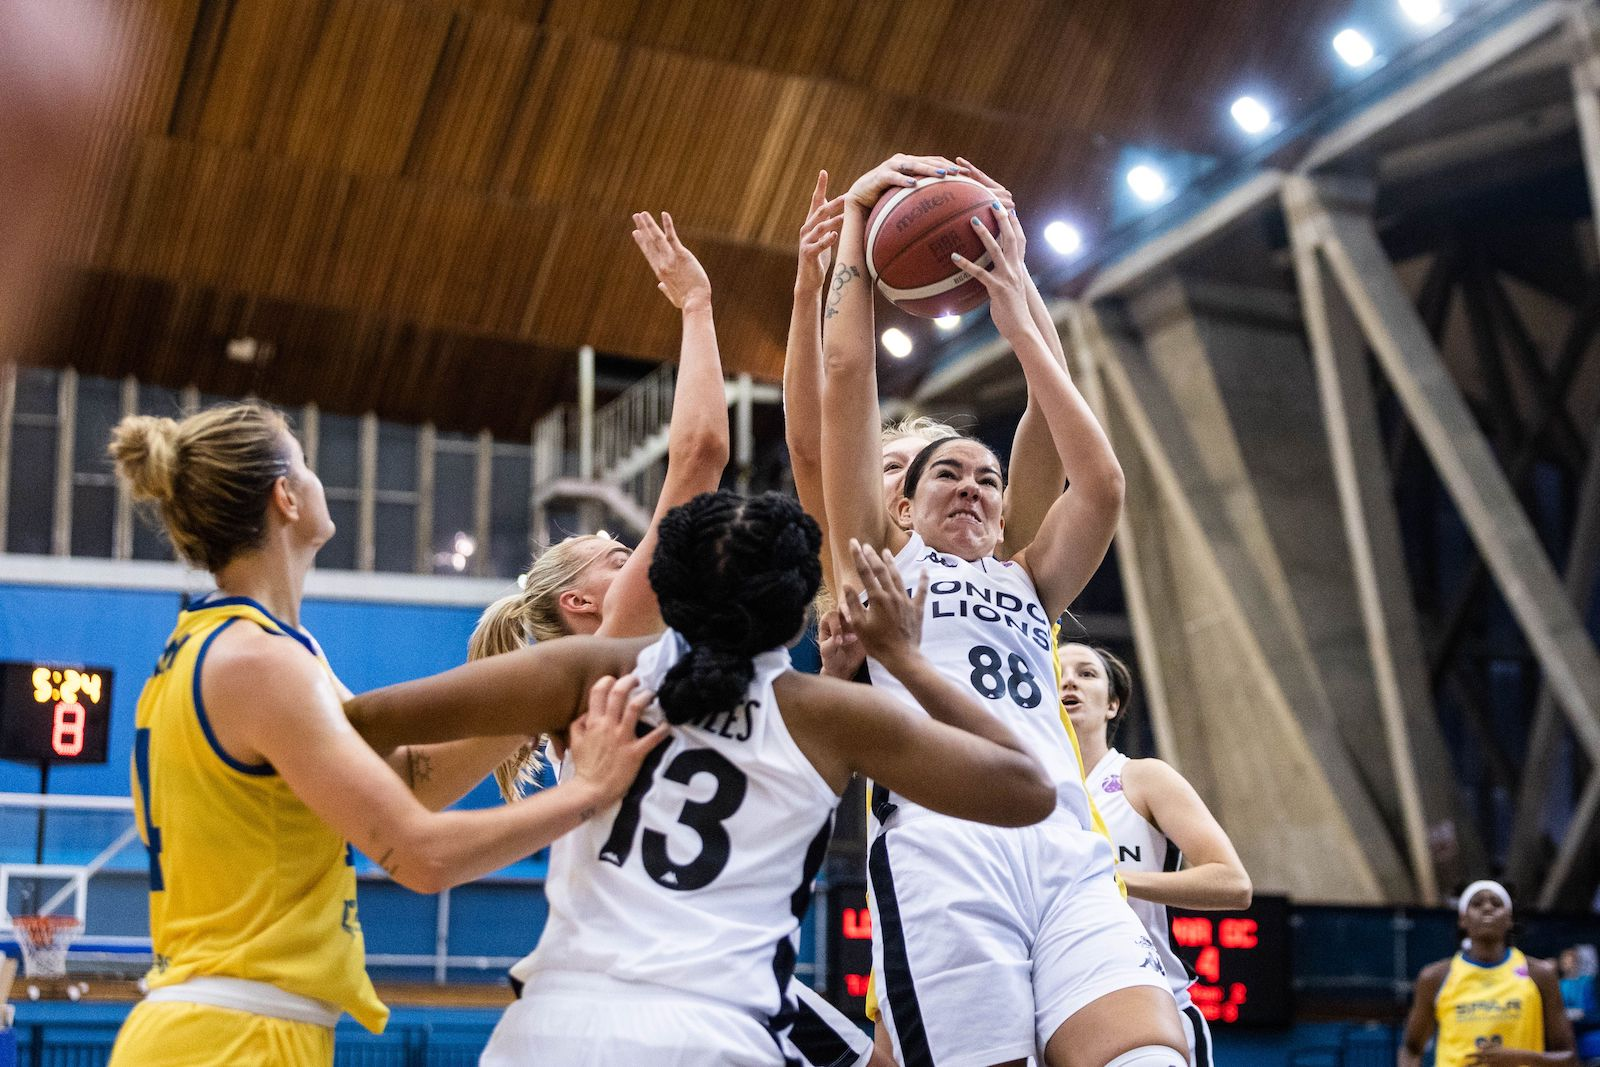 Lions to take the win over Gran Canaria in EuroCup Qualifer